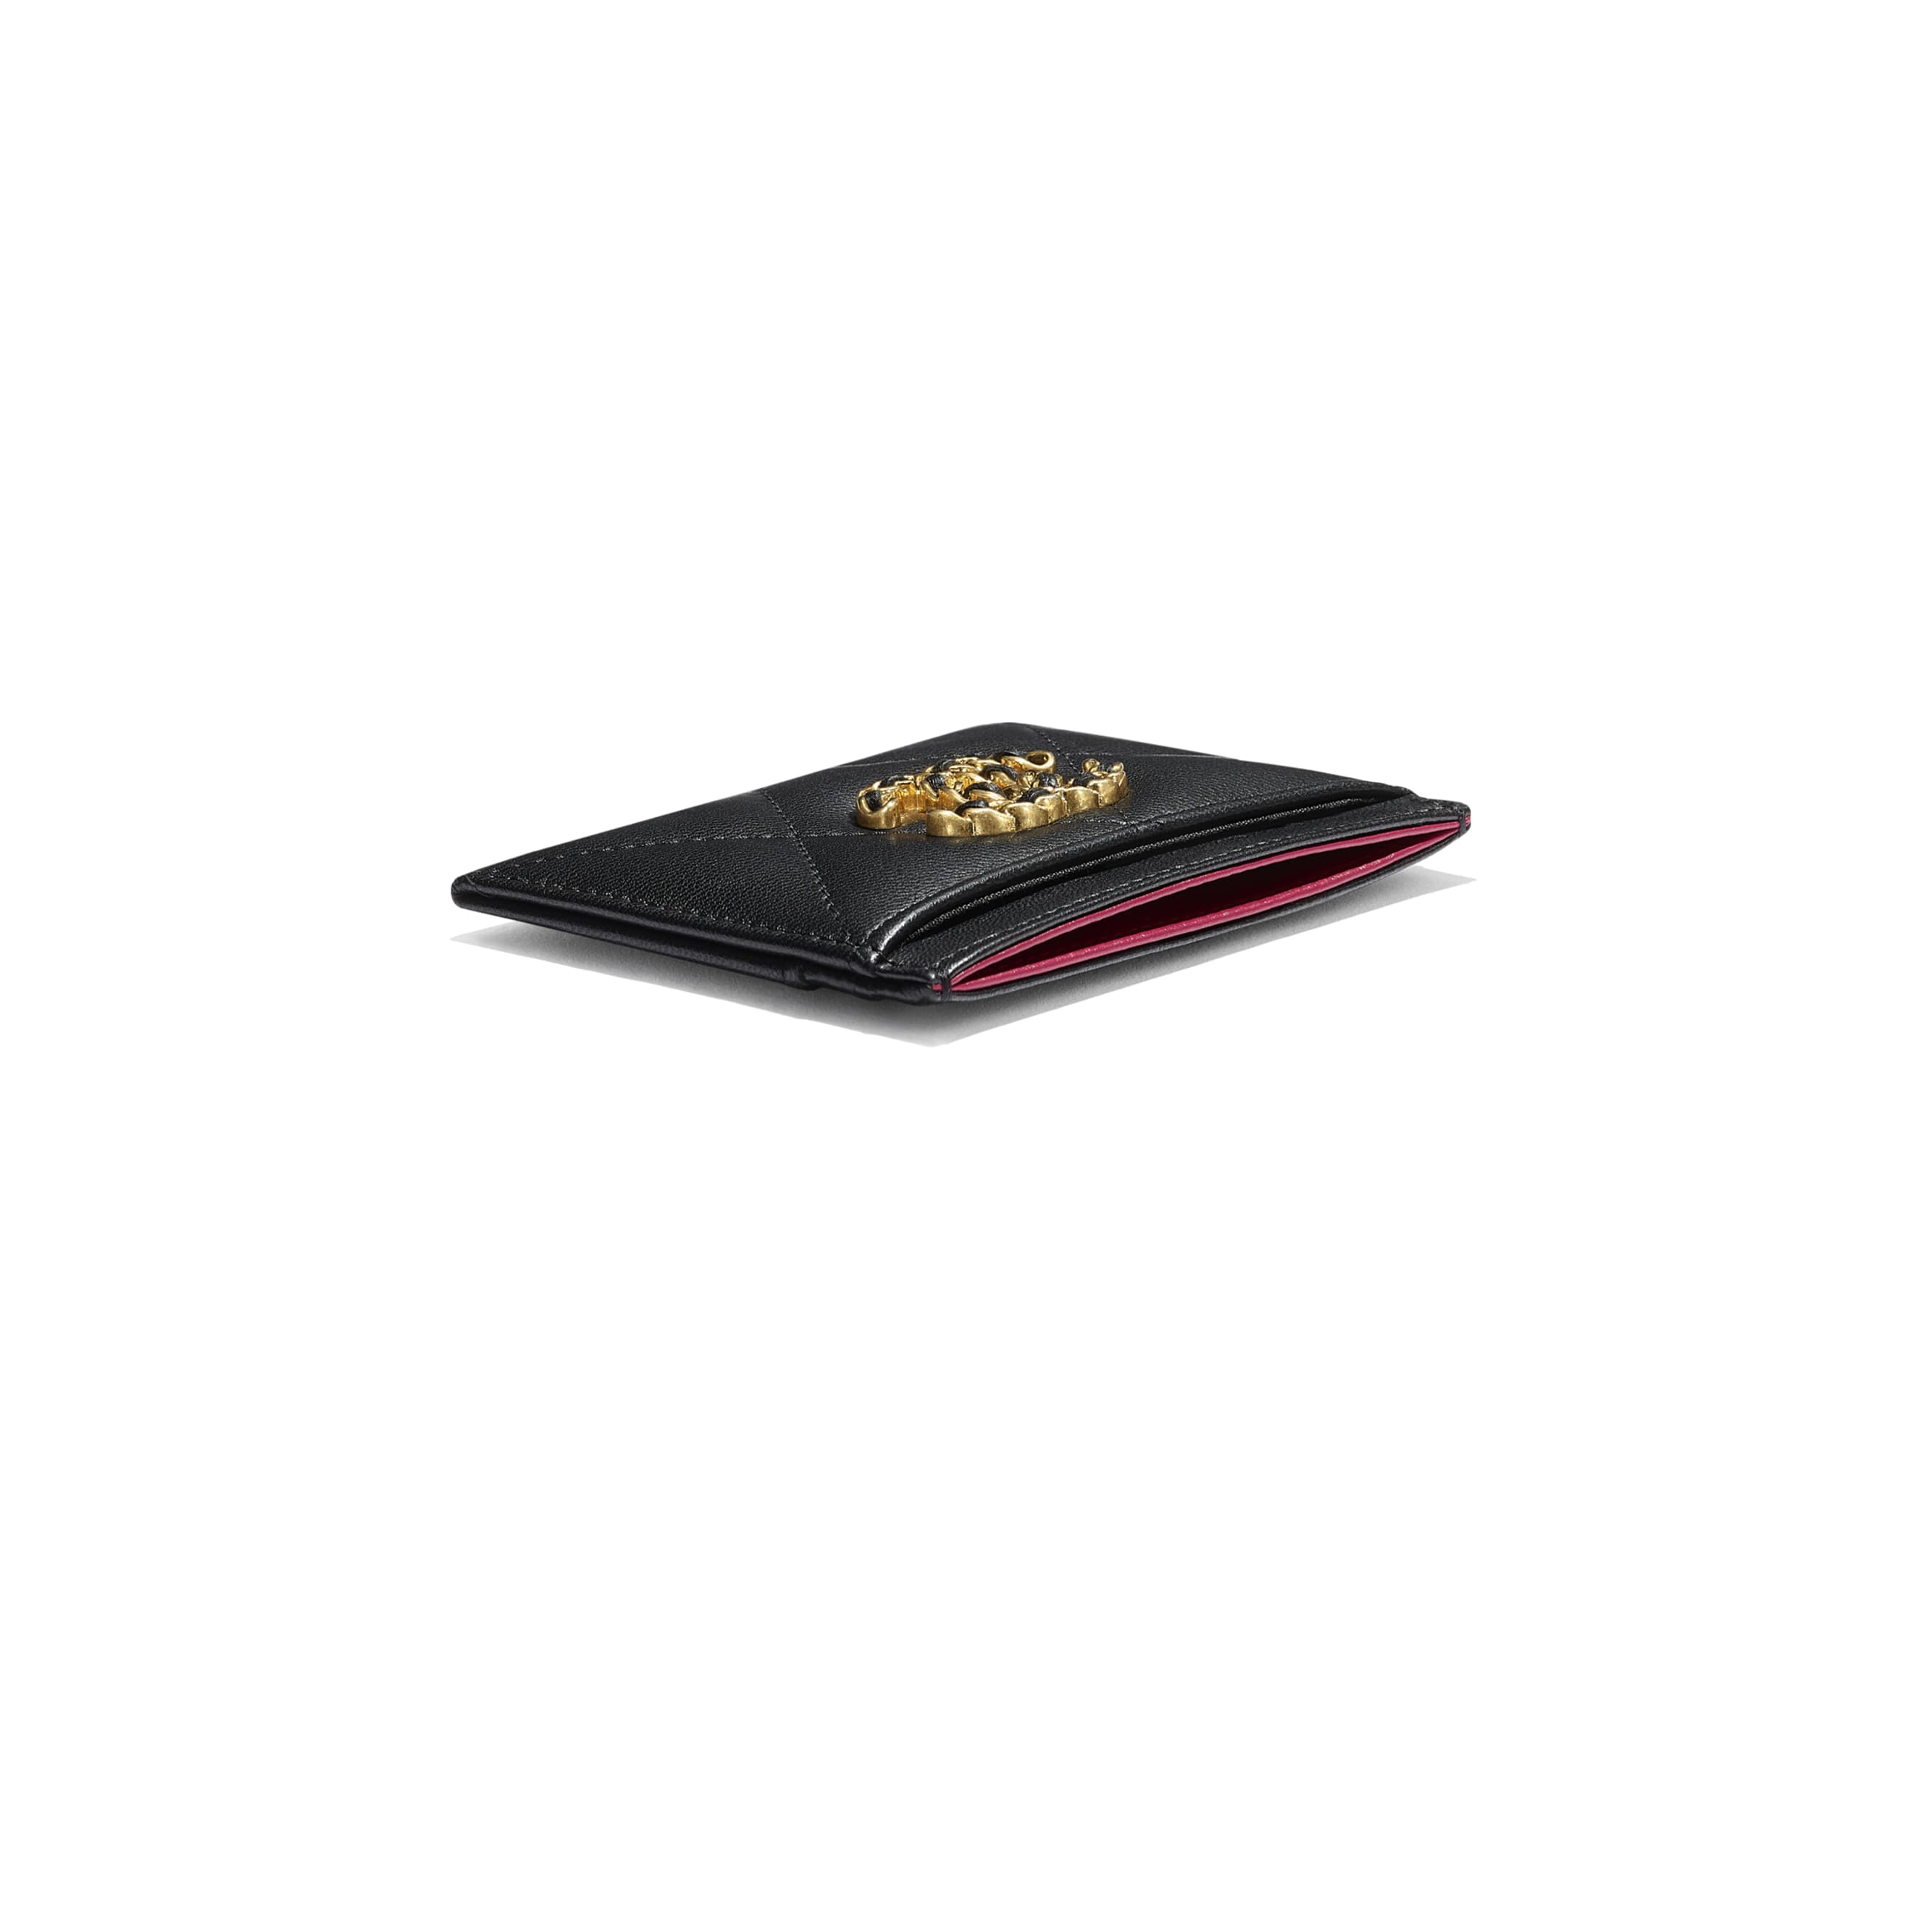 CHANEL 19 Card Holder - Black - Shiny Goatskin, Gold-Tone, Silver-Tone & Ruthenium-Finish Metal - CHANEL - Extra view - see standard sized version